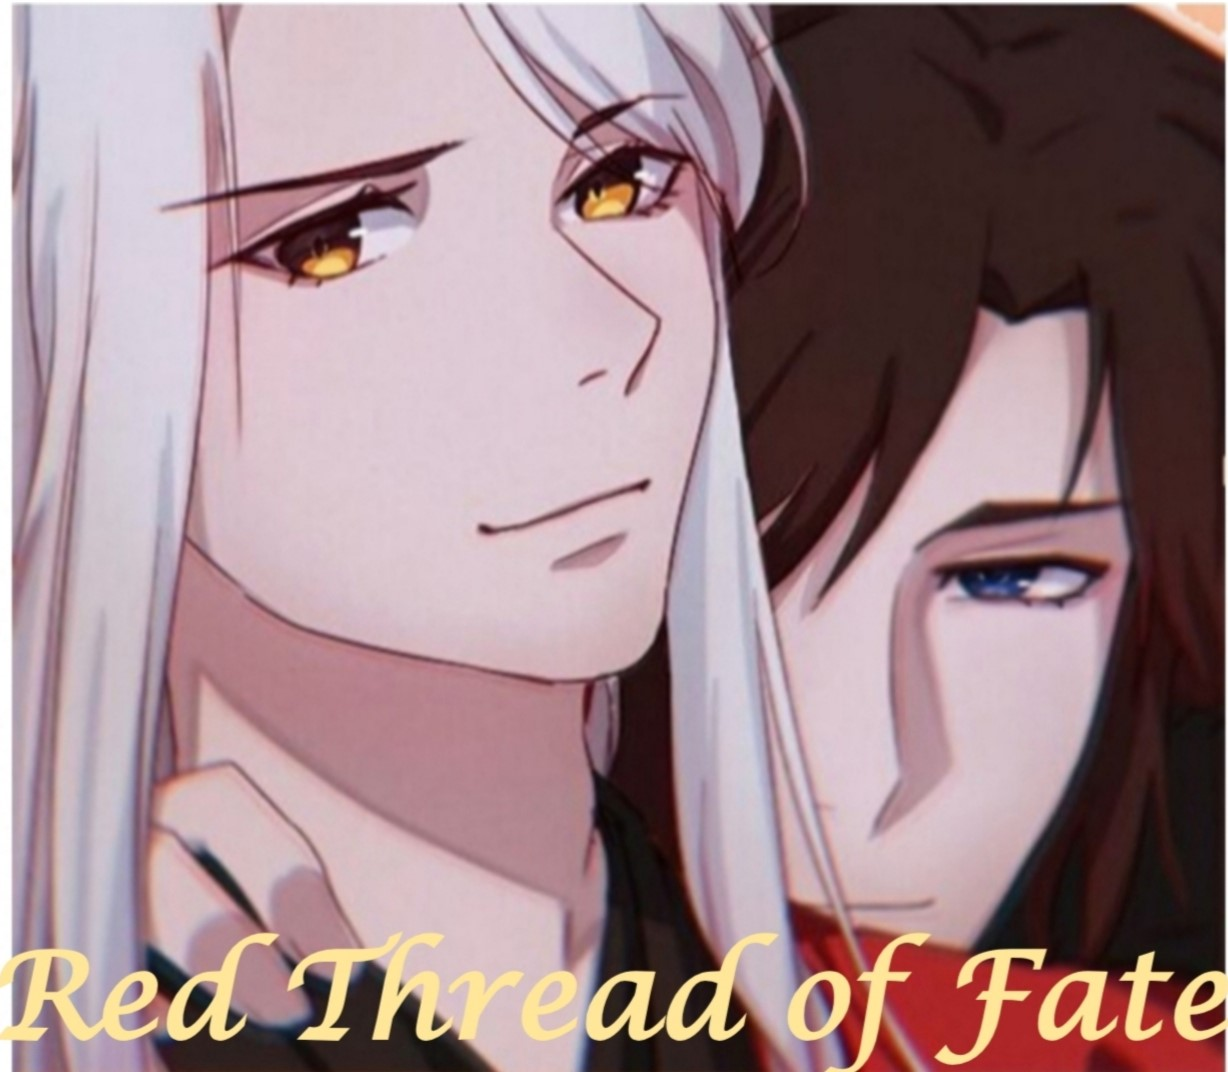 Red Thread Of Fate Ch. 2 Chapter 2